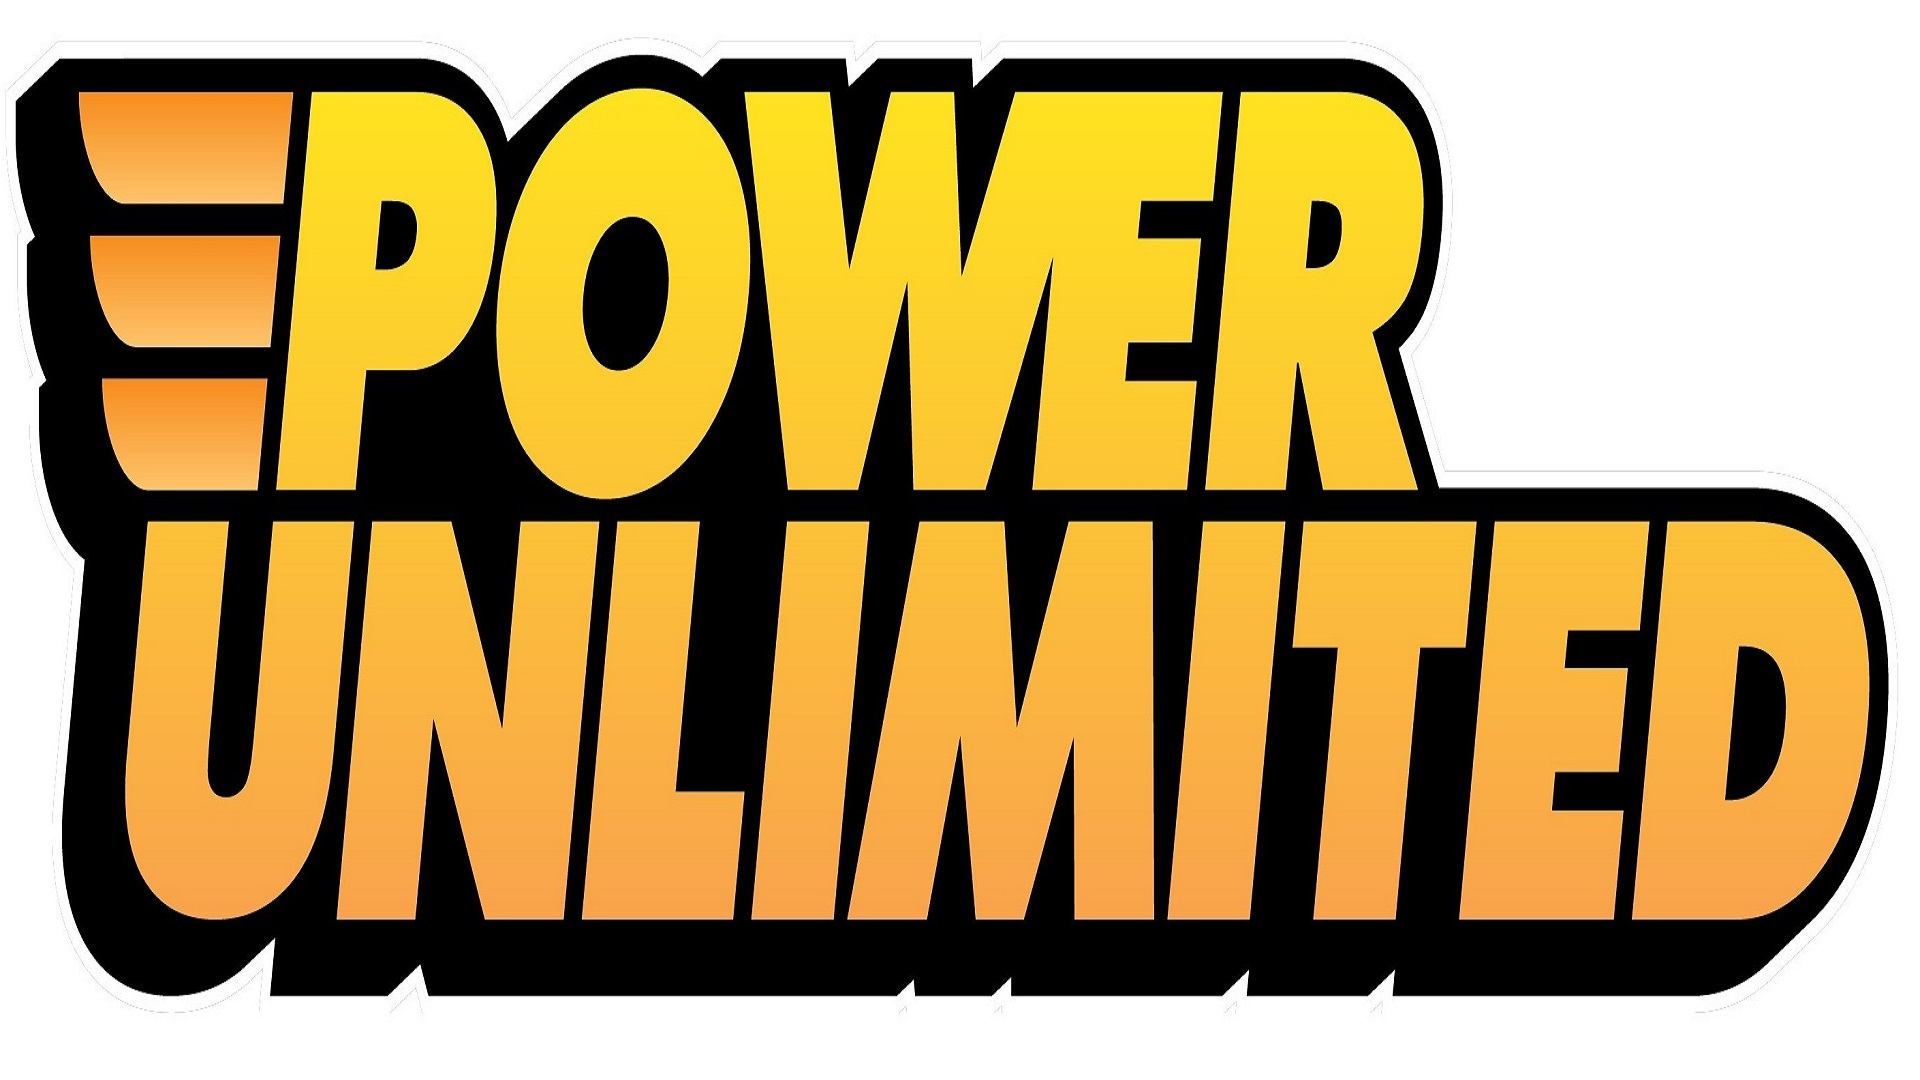 PowerUnlimited Tv fanart